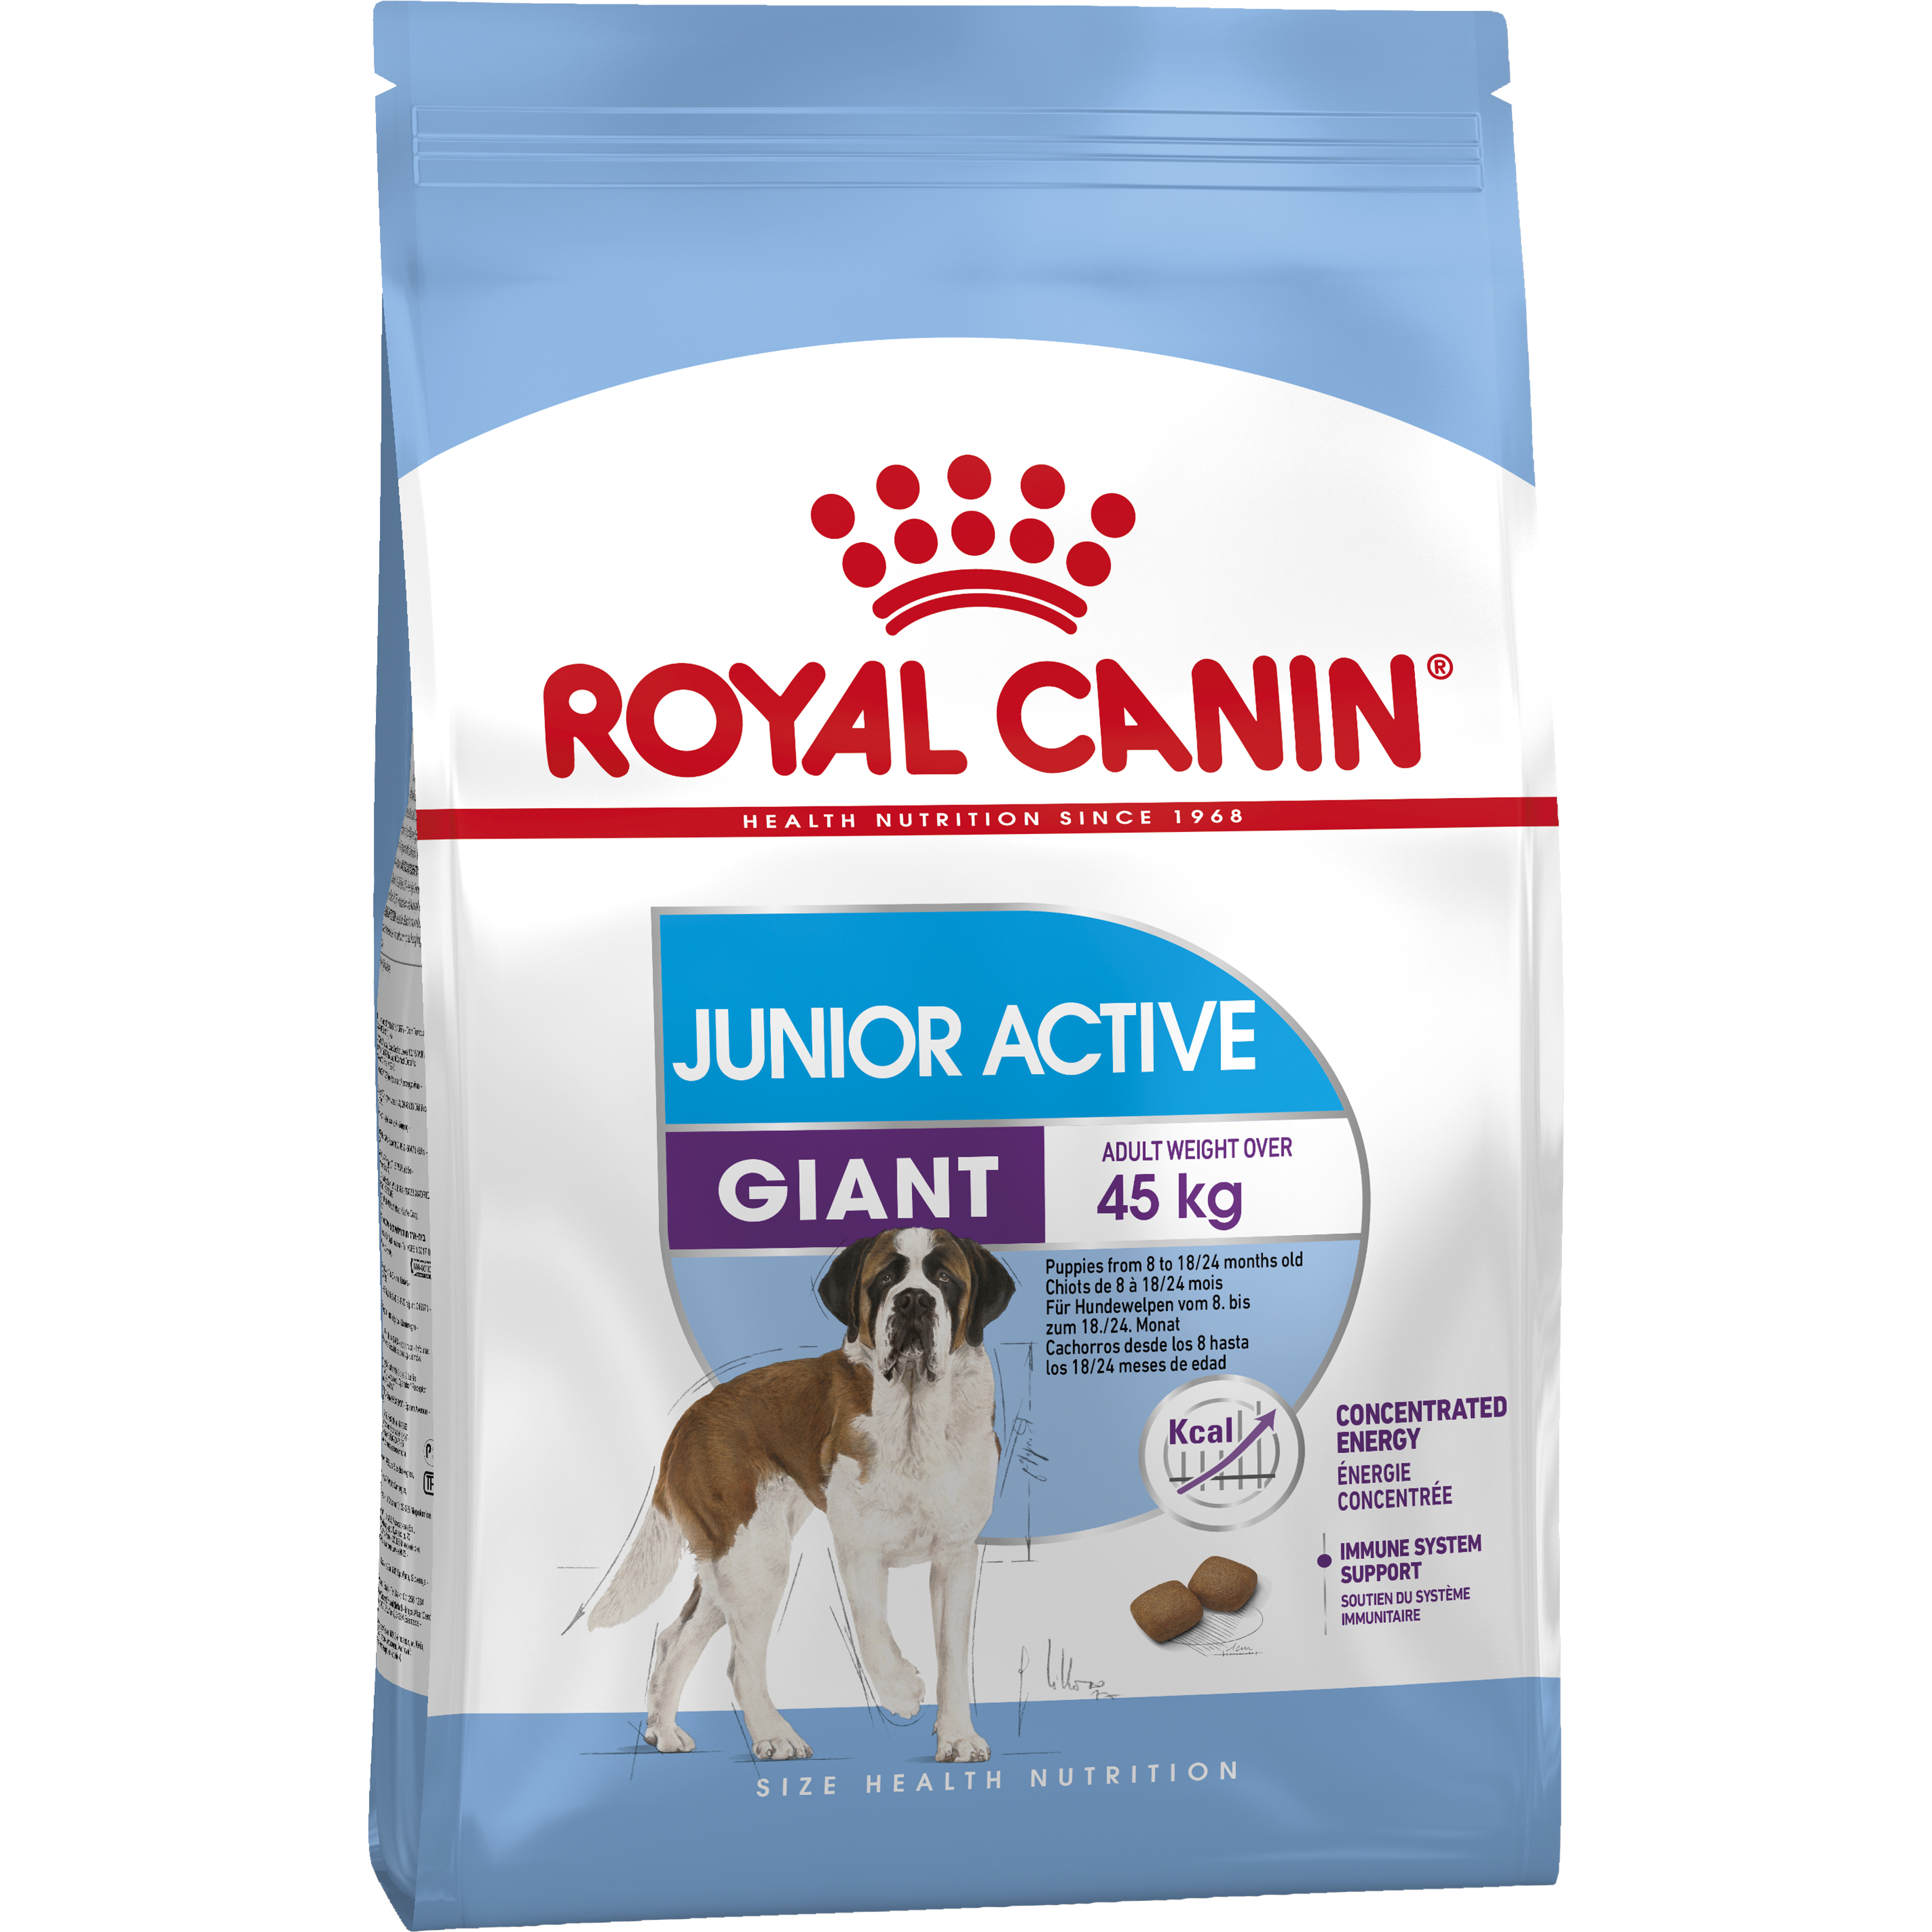 Hundfoder Royal Canin Giant Junior Active, 15 kg